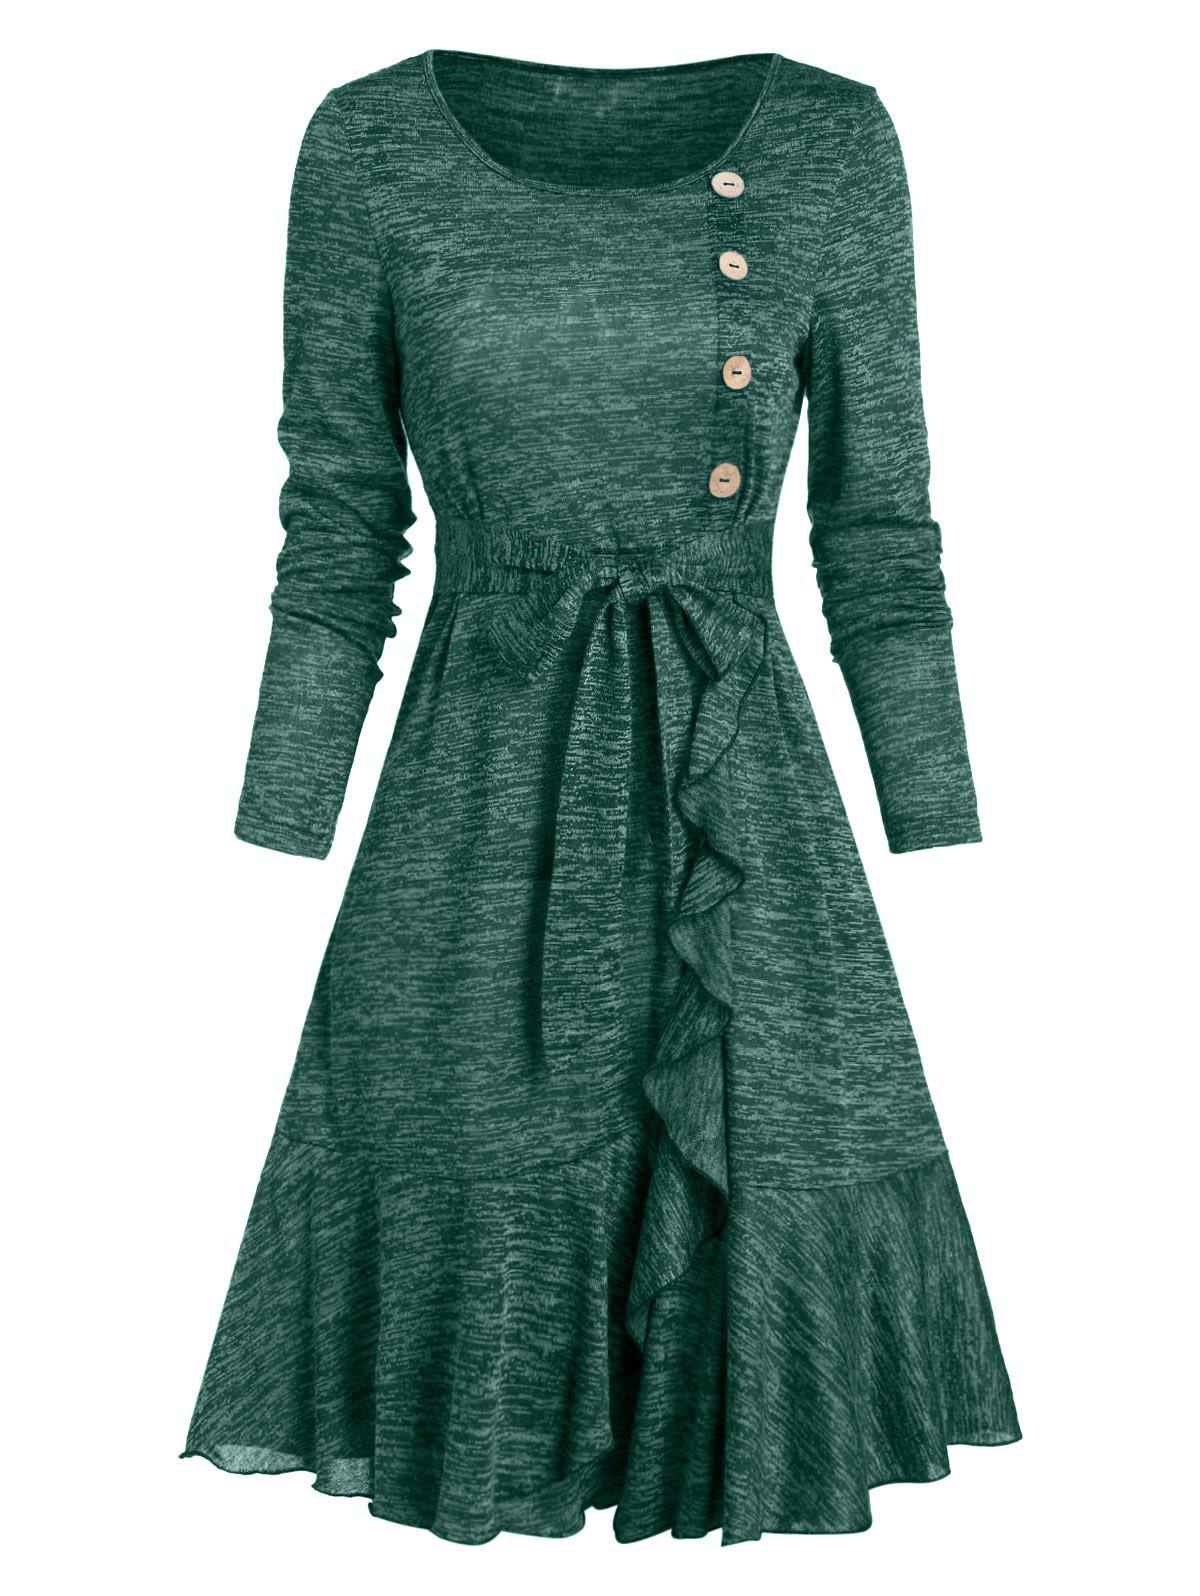 Button Ruffled Heather Knit A Line Dress - DARK GREEN L